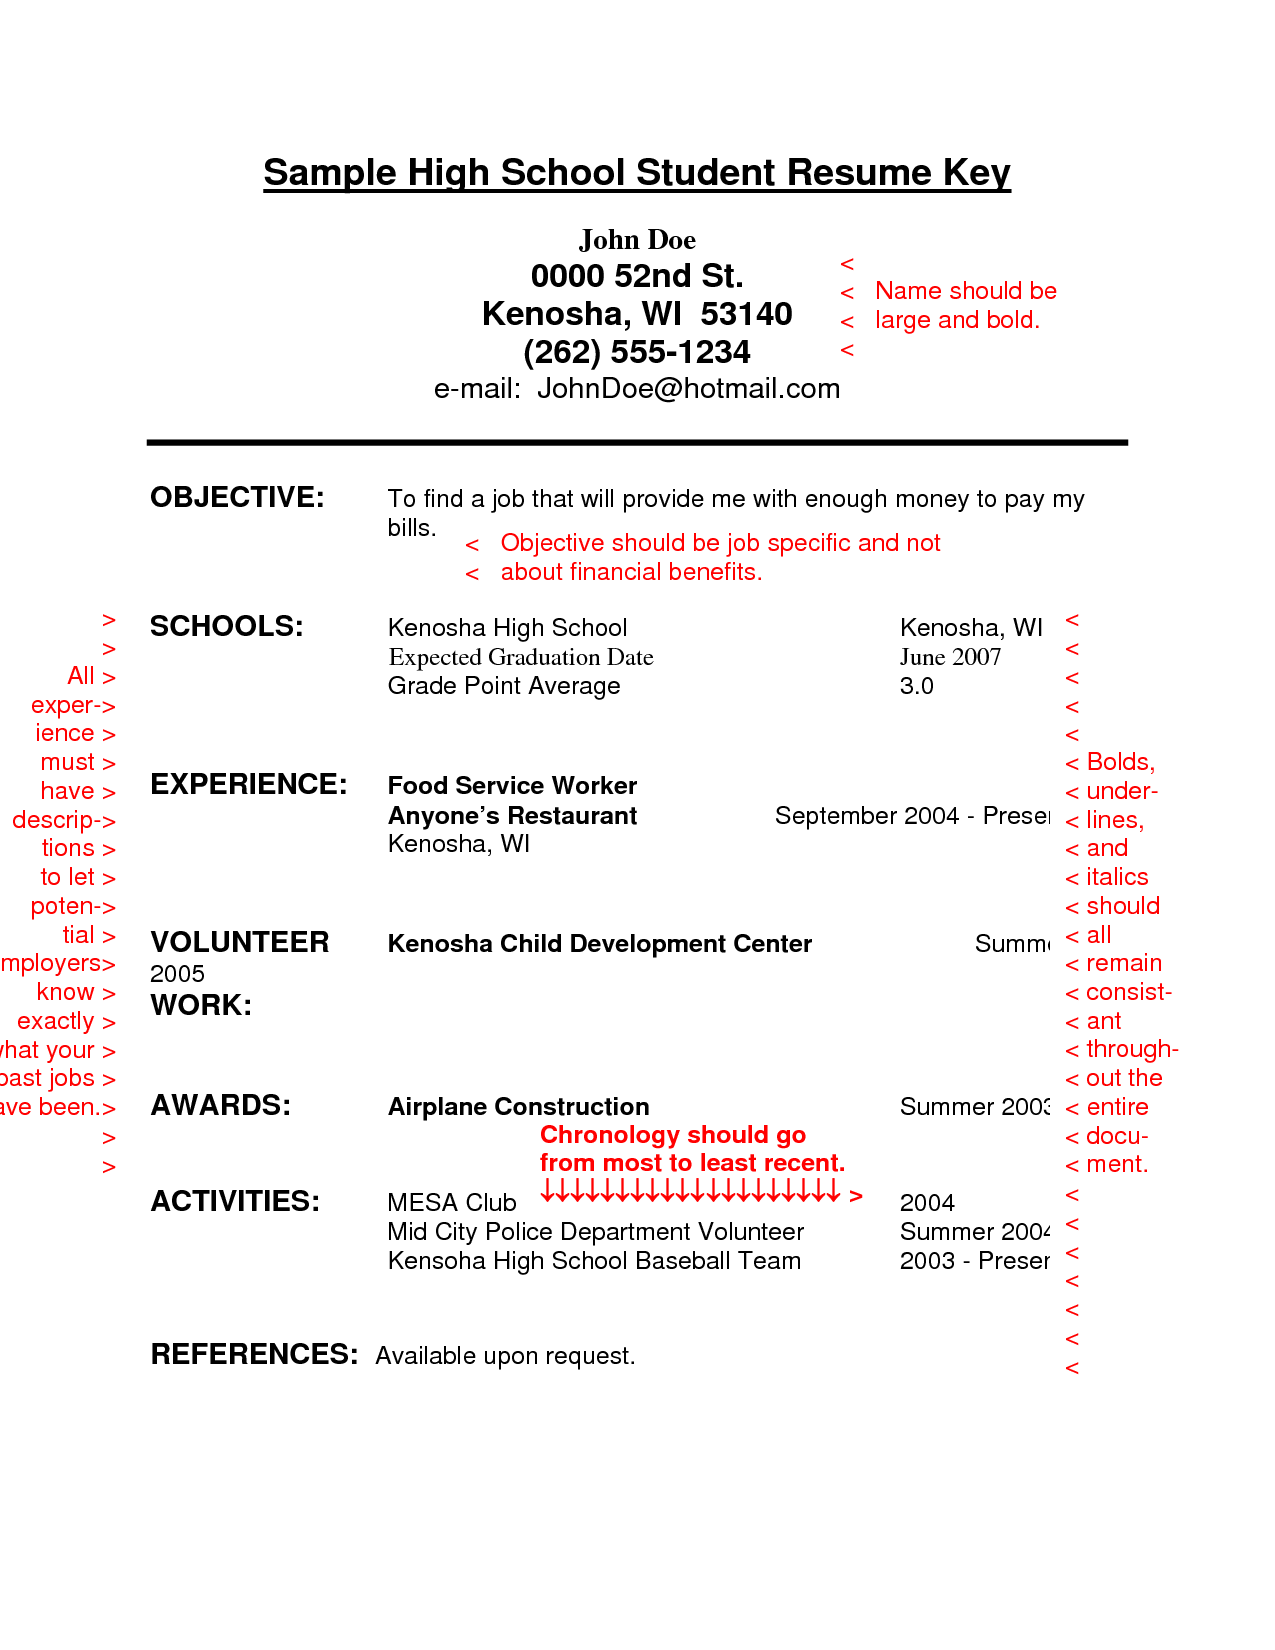 Resume Sample For High School Students With No Experience   Http://www.  Resume Examples For High School Students